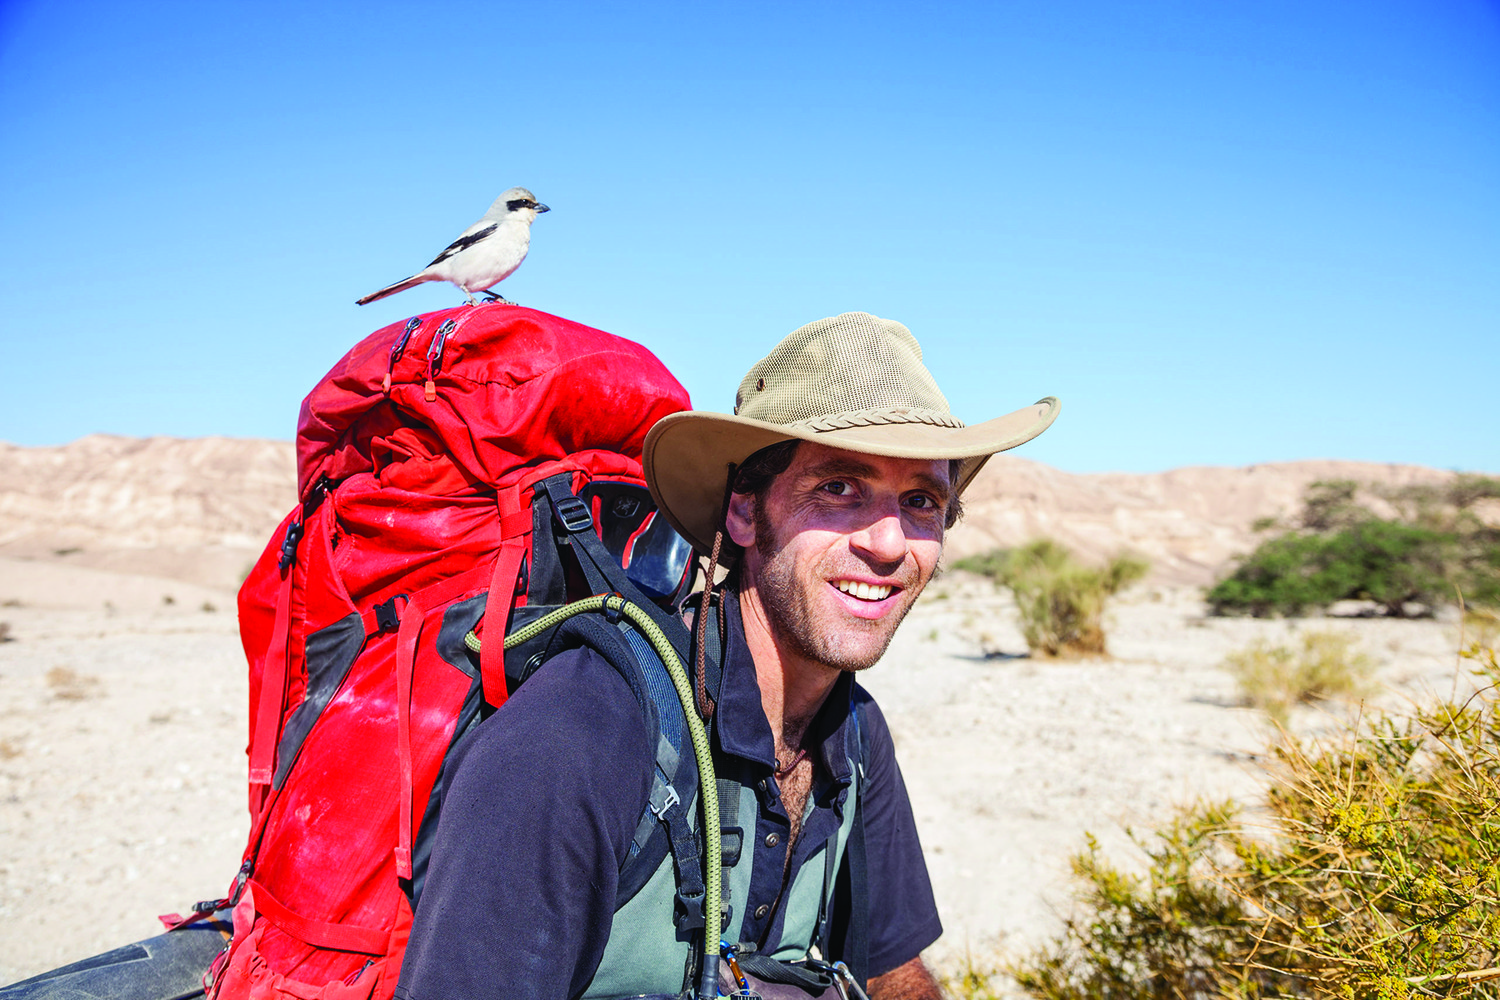 Udi Goren, a well-known photographer and videographer whose work has appeared on the National Geographic Channel, is the first professional still photographer to have walked and documented the Israel National Trail.